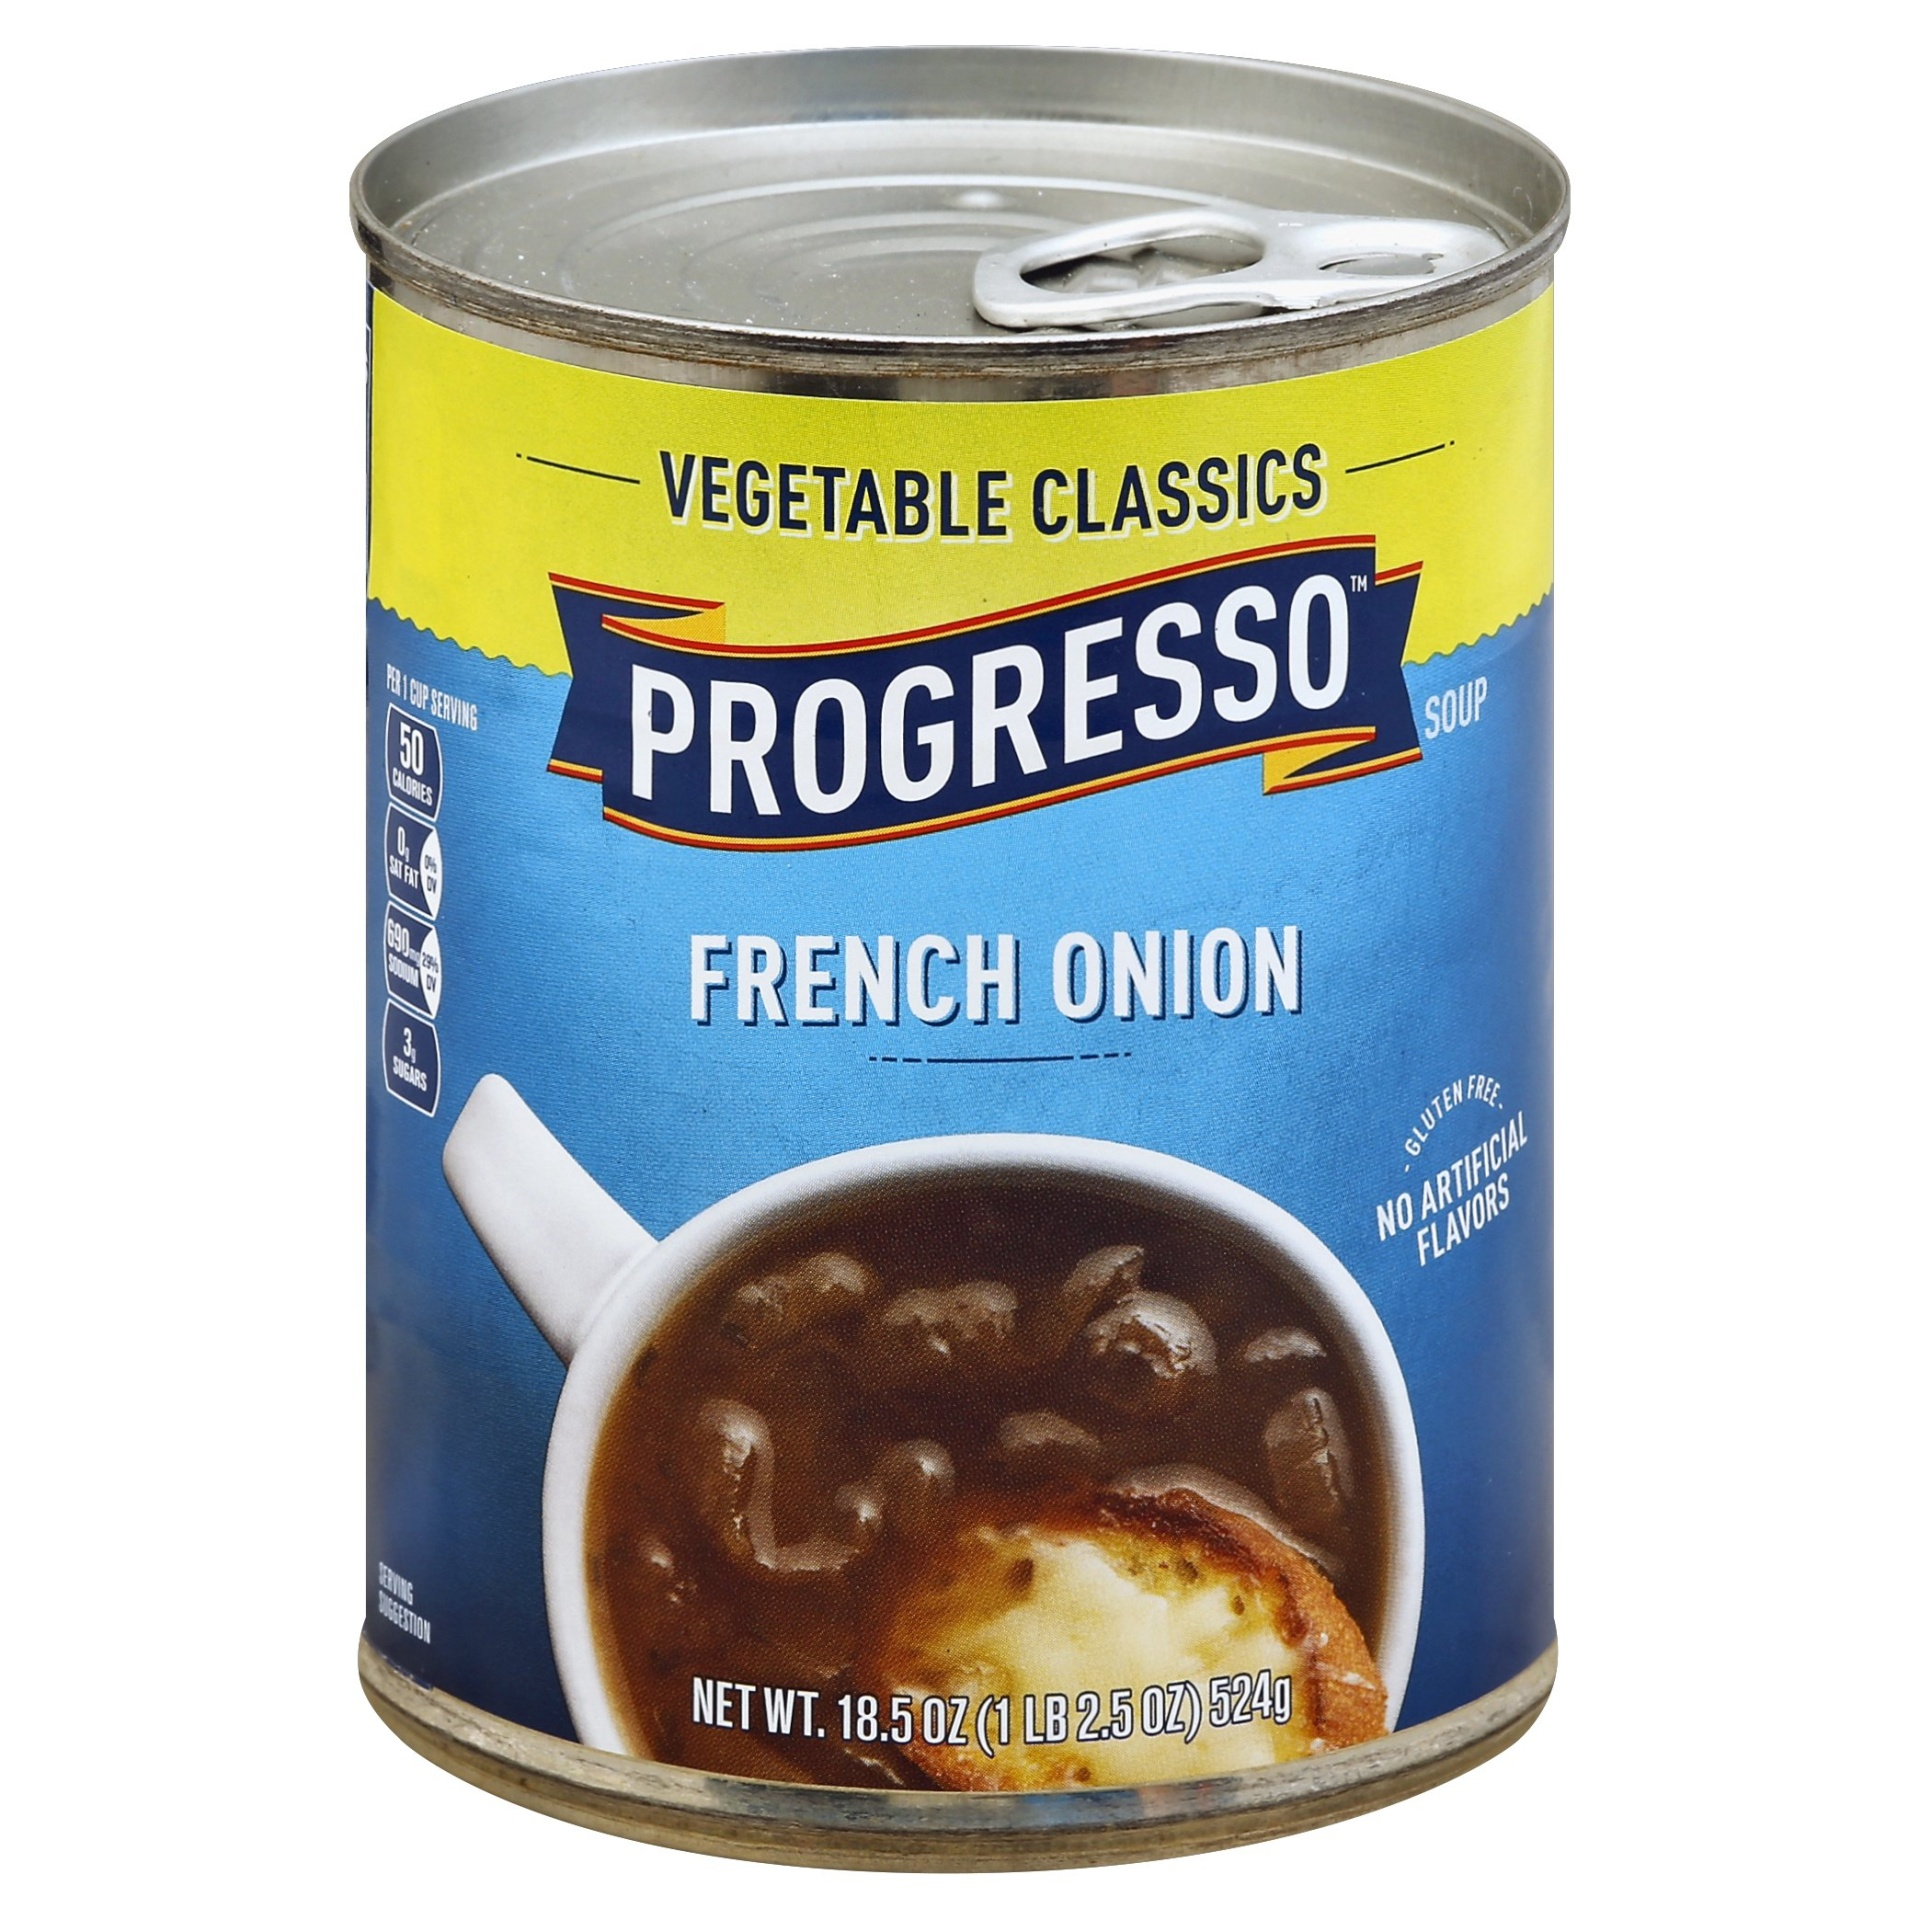 slide 1 of 1, Progresso Gluten Free Low Fat Vegetable Classics French Onion Soup,